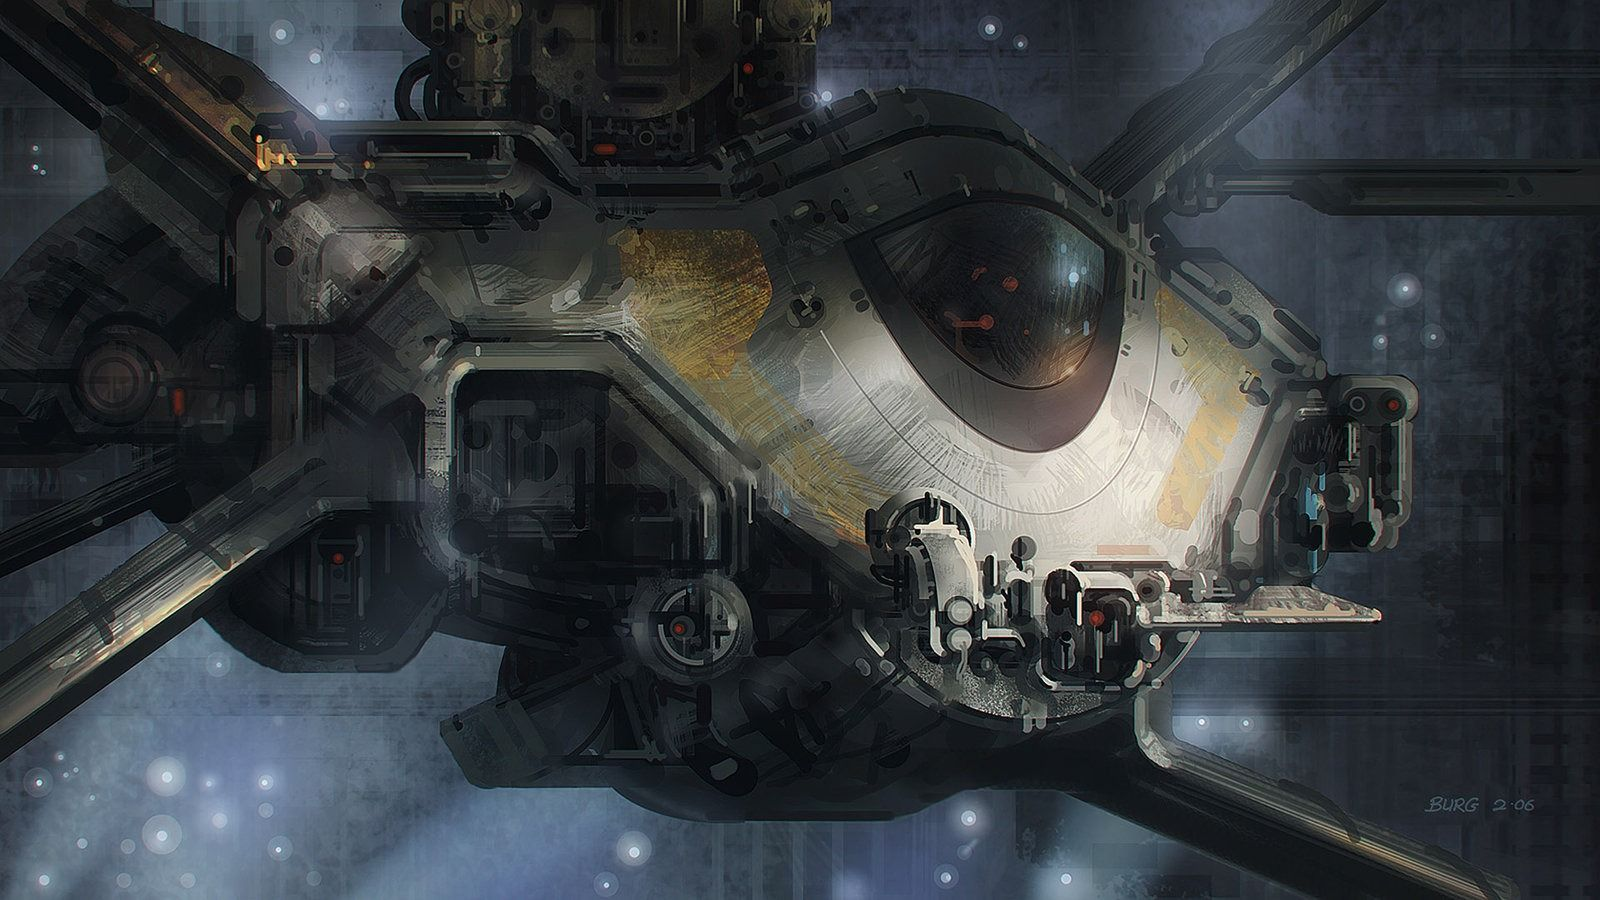 On Standby Picture  (2d, sci-fi, spaceship, concept art, speed painting)